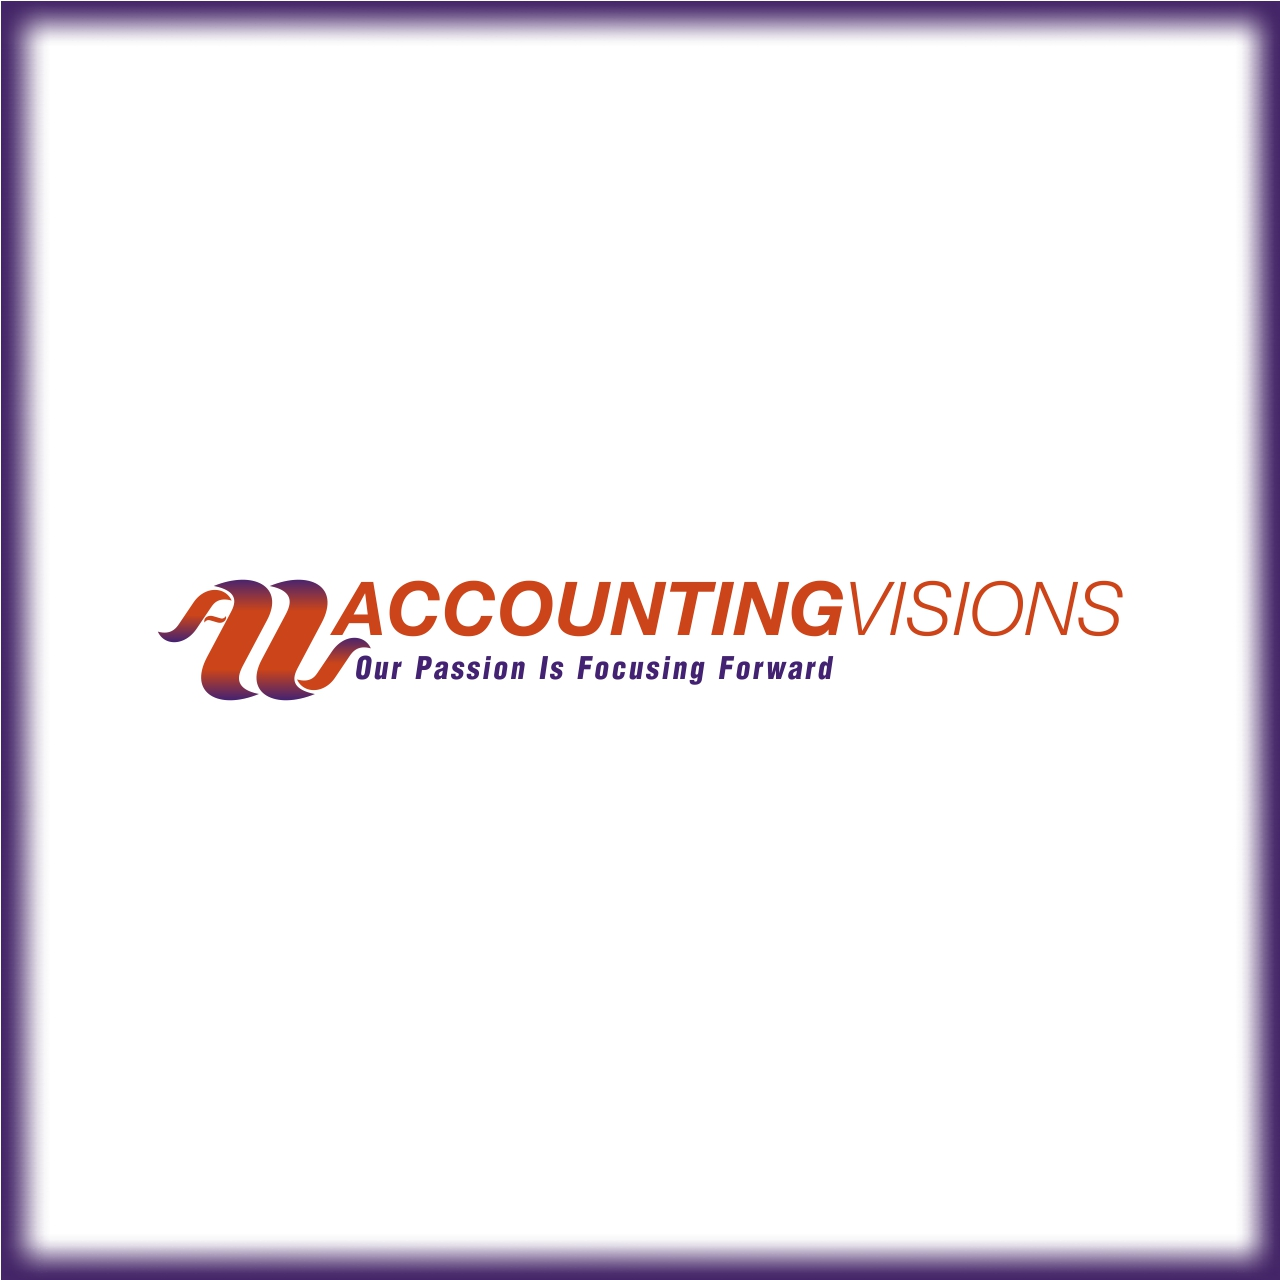 Logo Design by martinz - Entry No. 40 in the Logo Design Contest Accounting Visions.